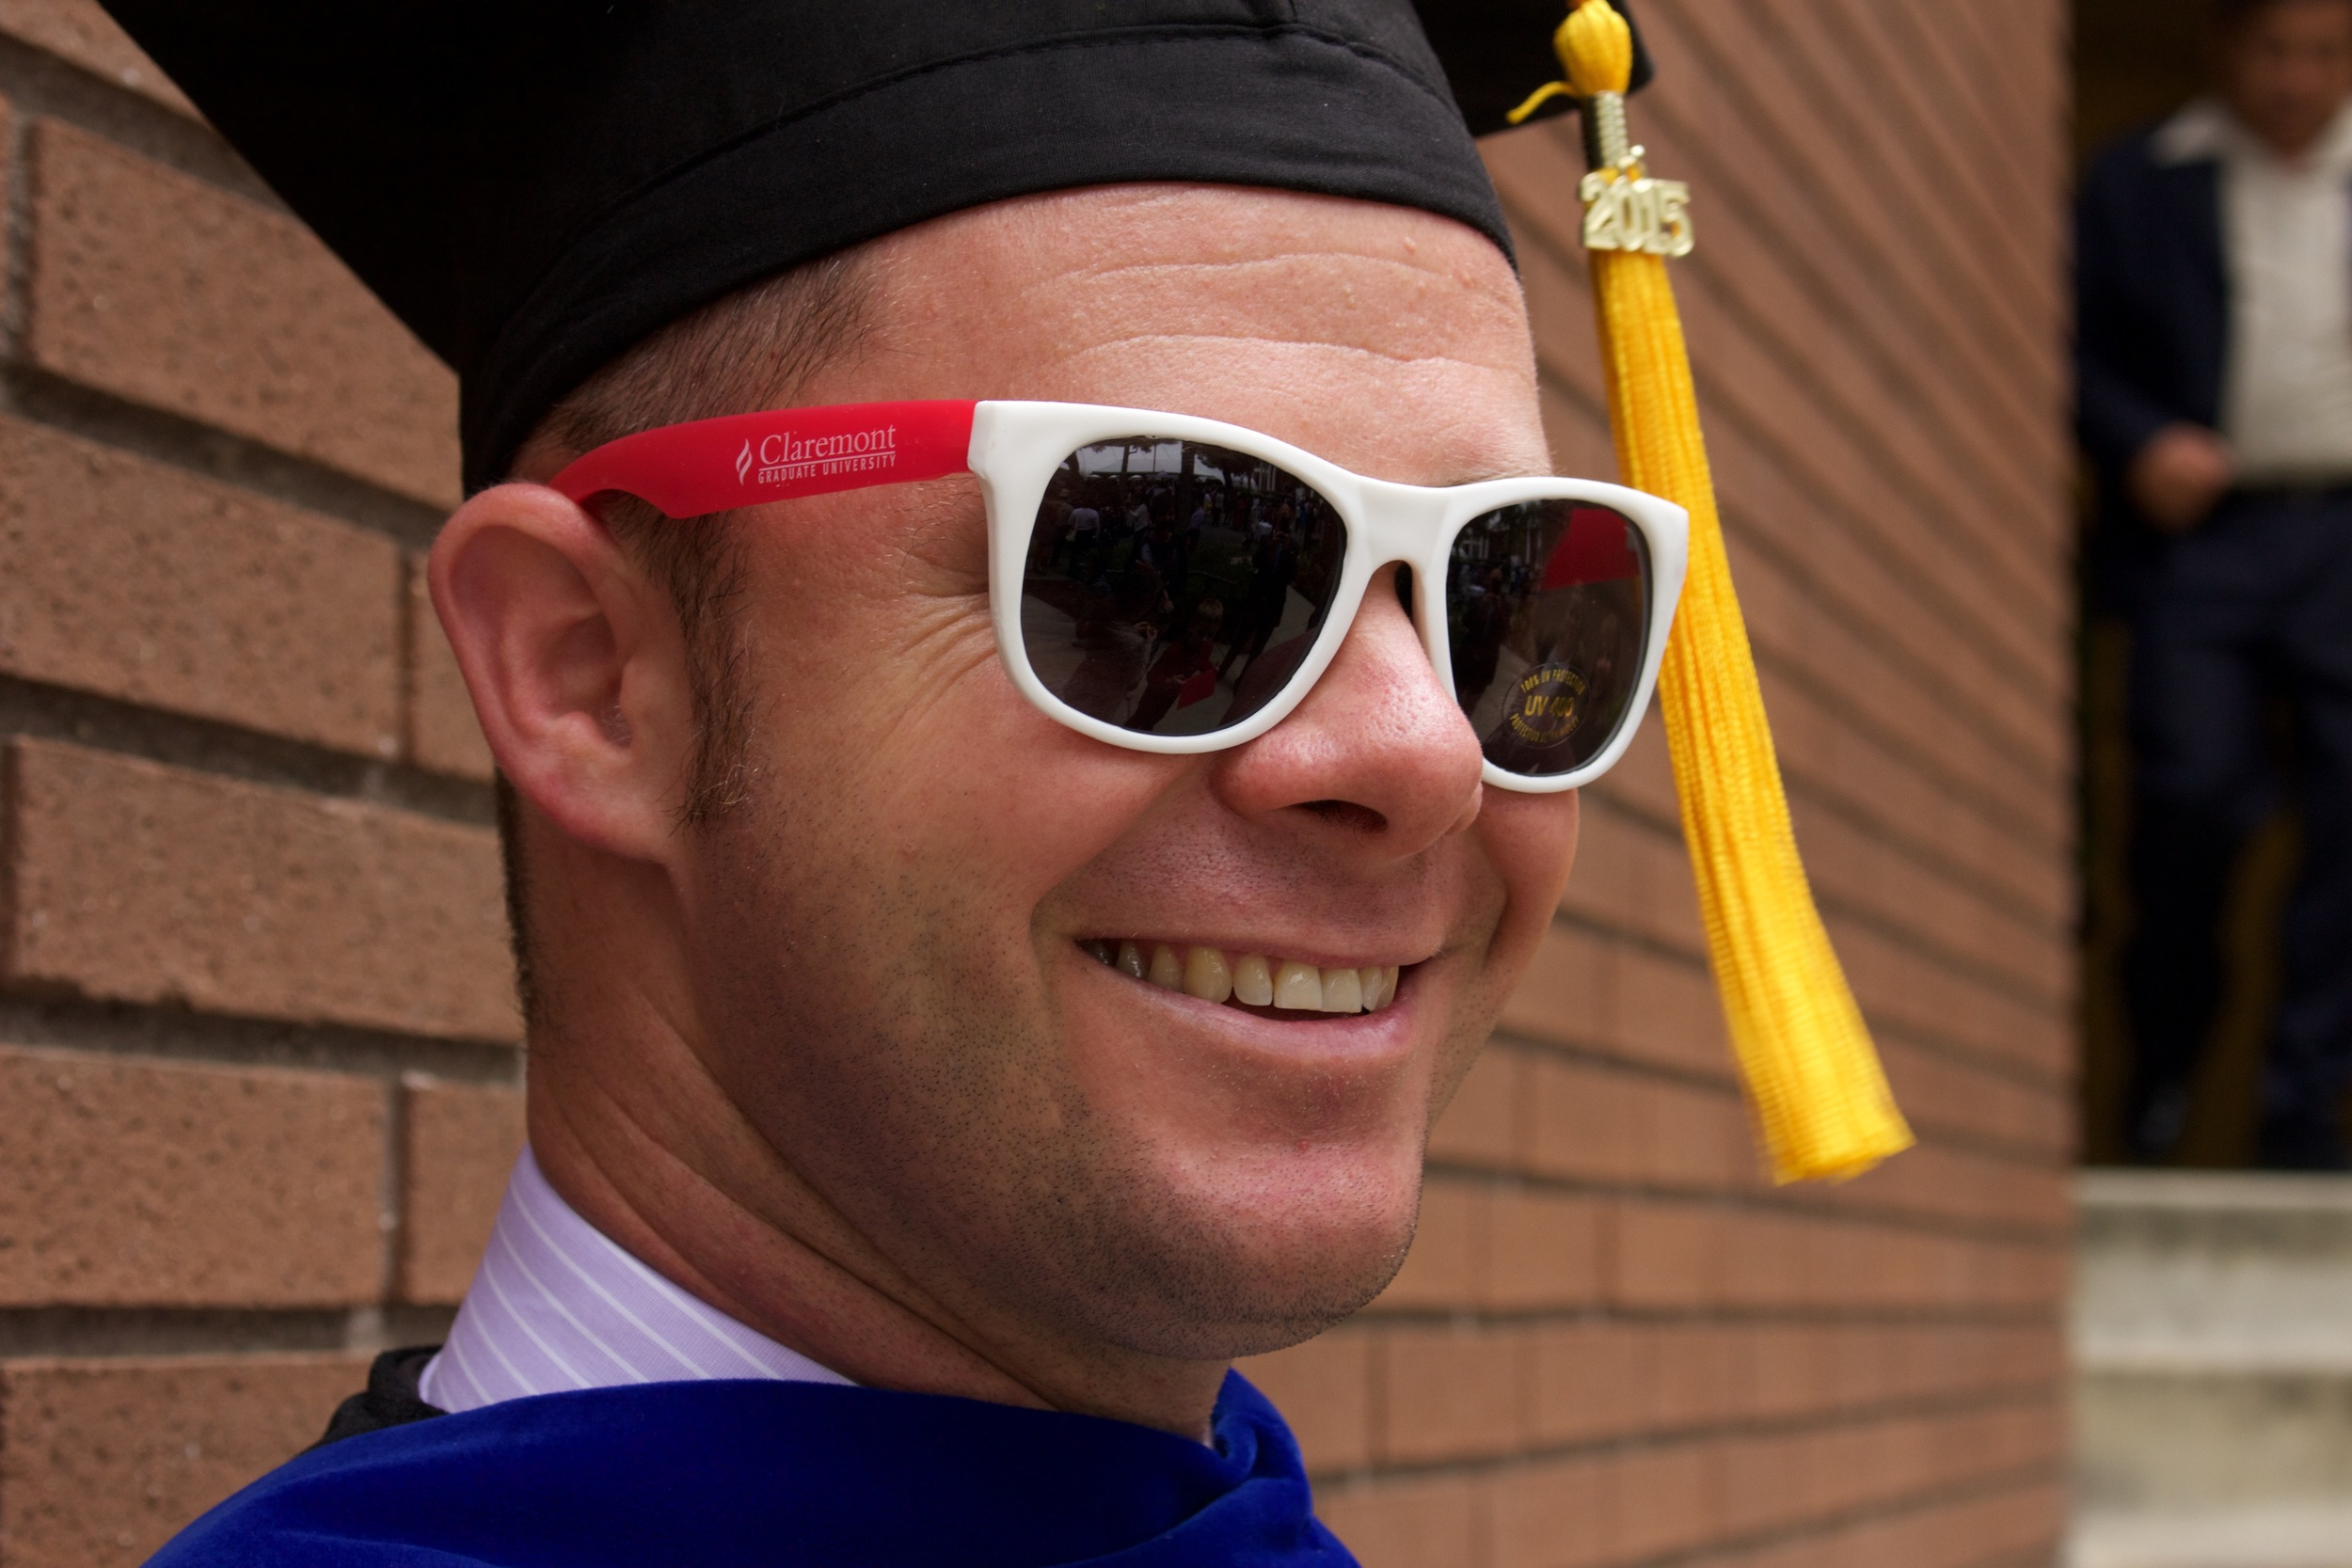 Official CGU Class of 2015 sunglasses. It's good to see that all of that tuition went to  some  use.